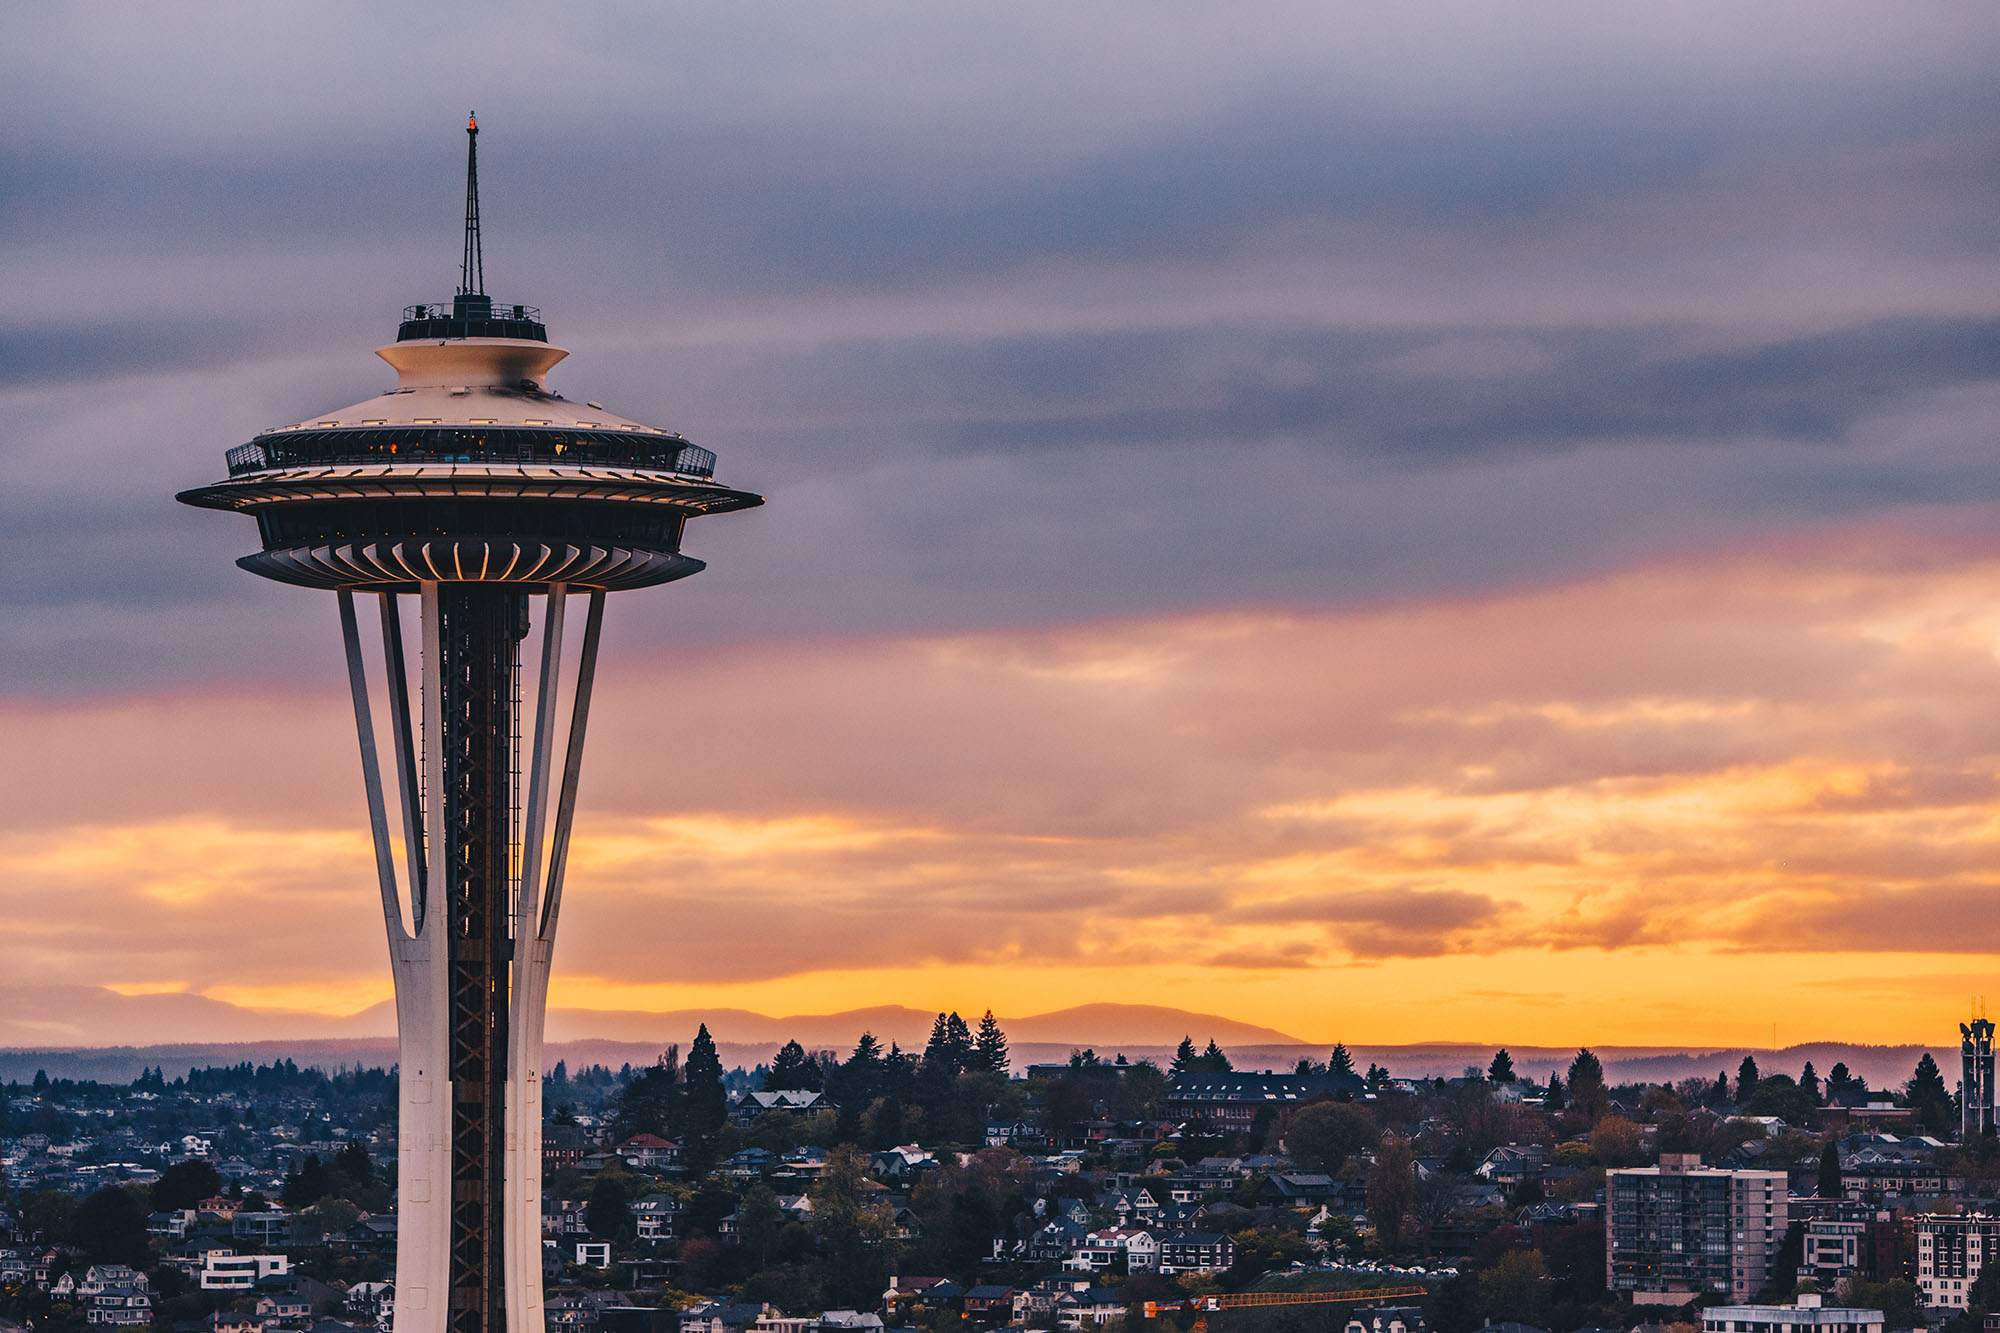 Top 5 Spots For Landscape Photography In Seattle